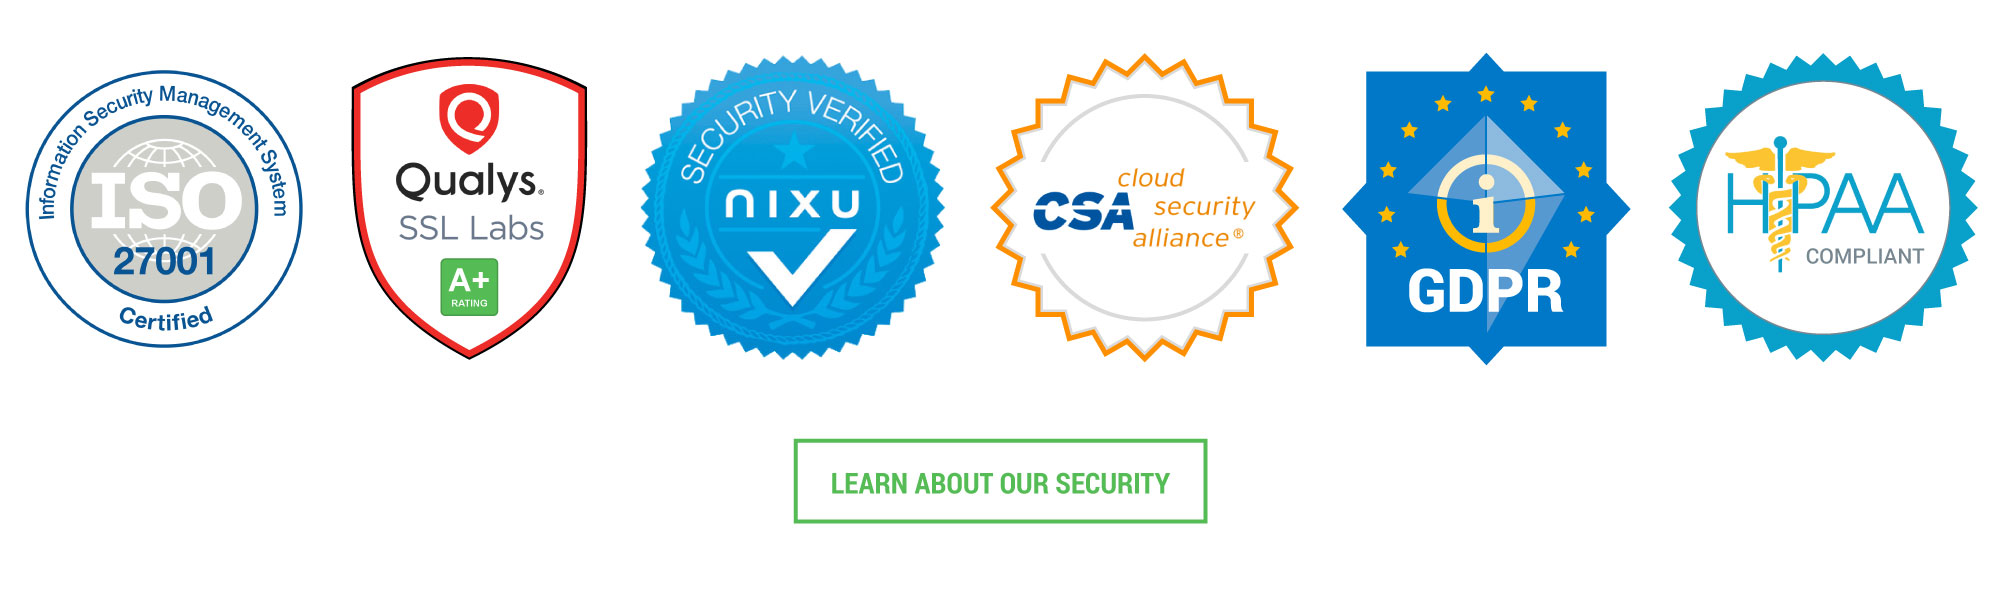 security-banner-5-with-button.jpeg